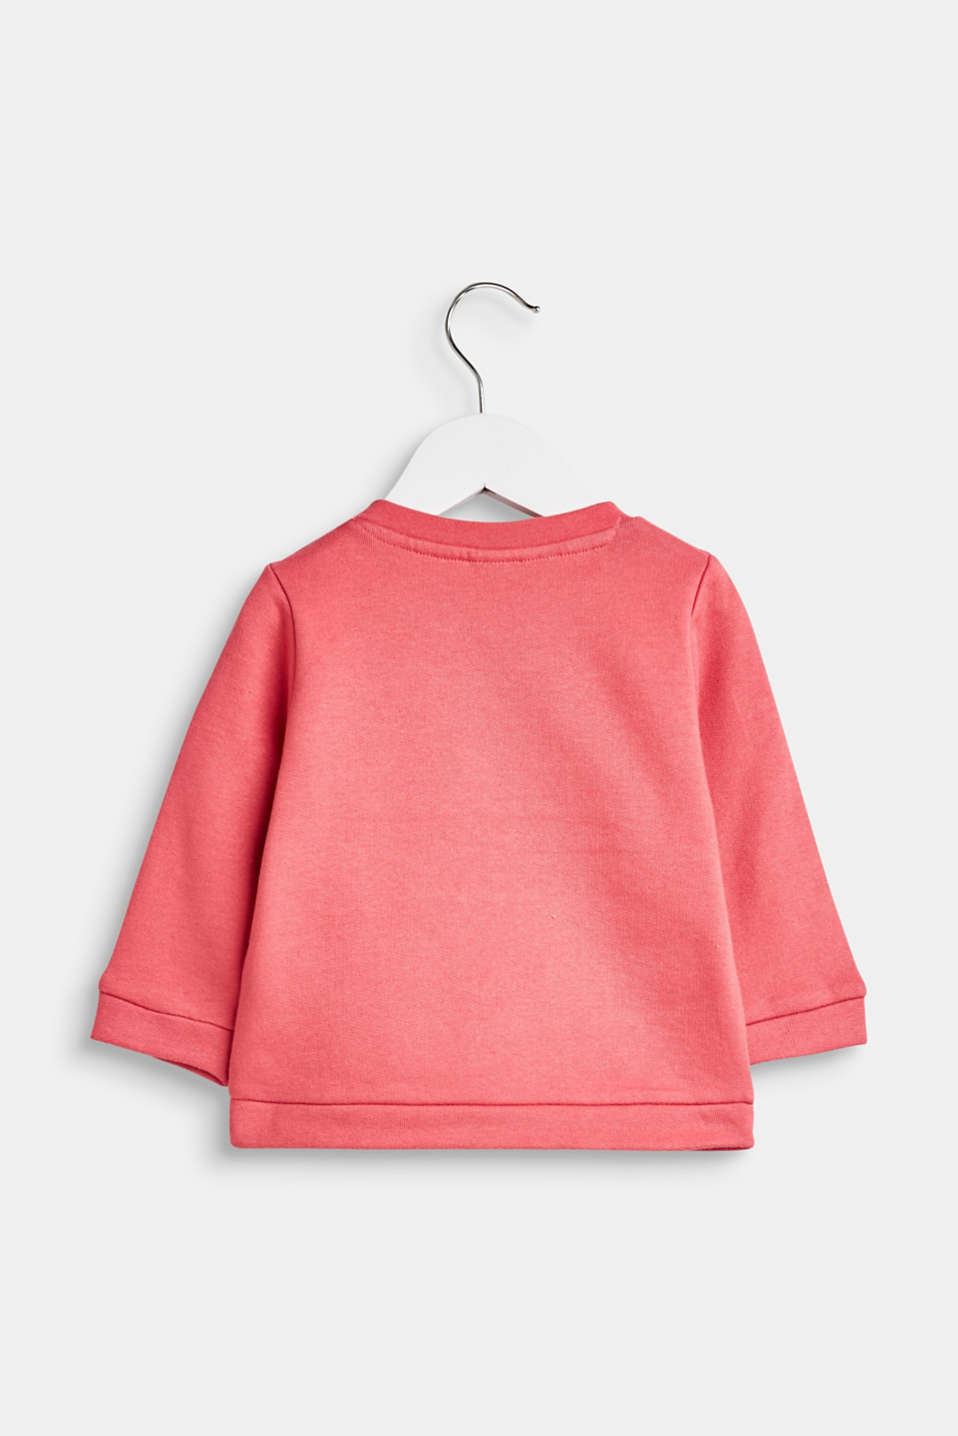 Sweatshirt with a print, 100% cotton, LCTINTED ROSE, detail image number 1